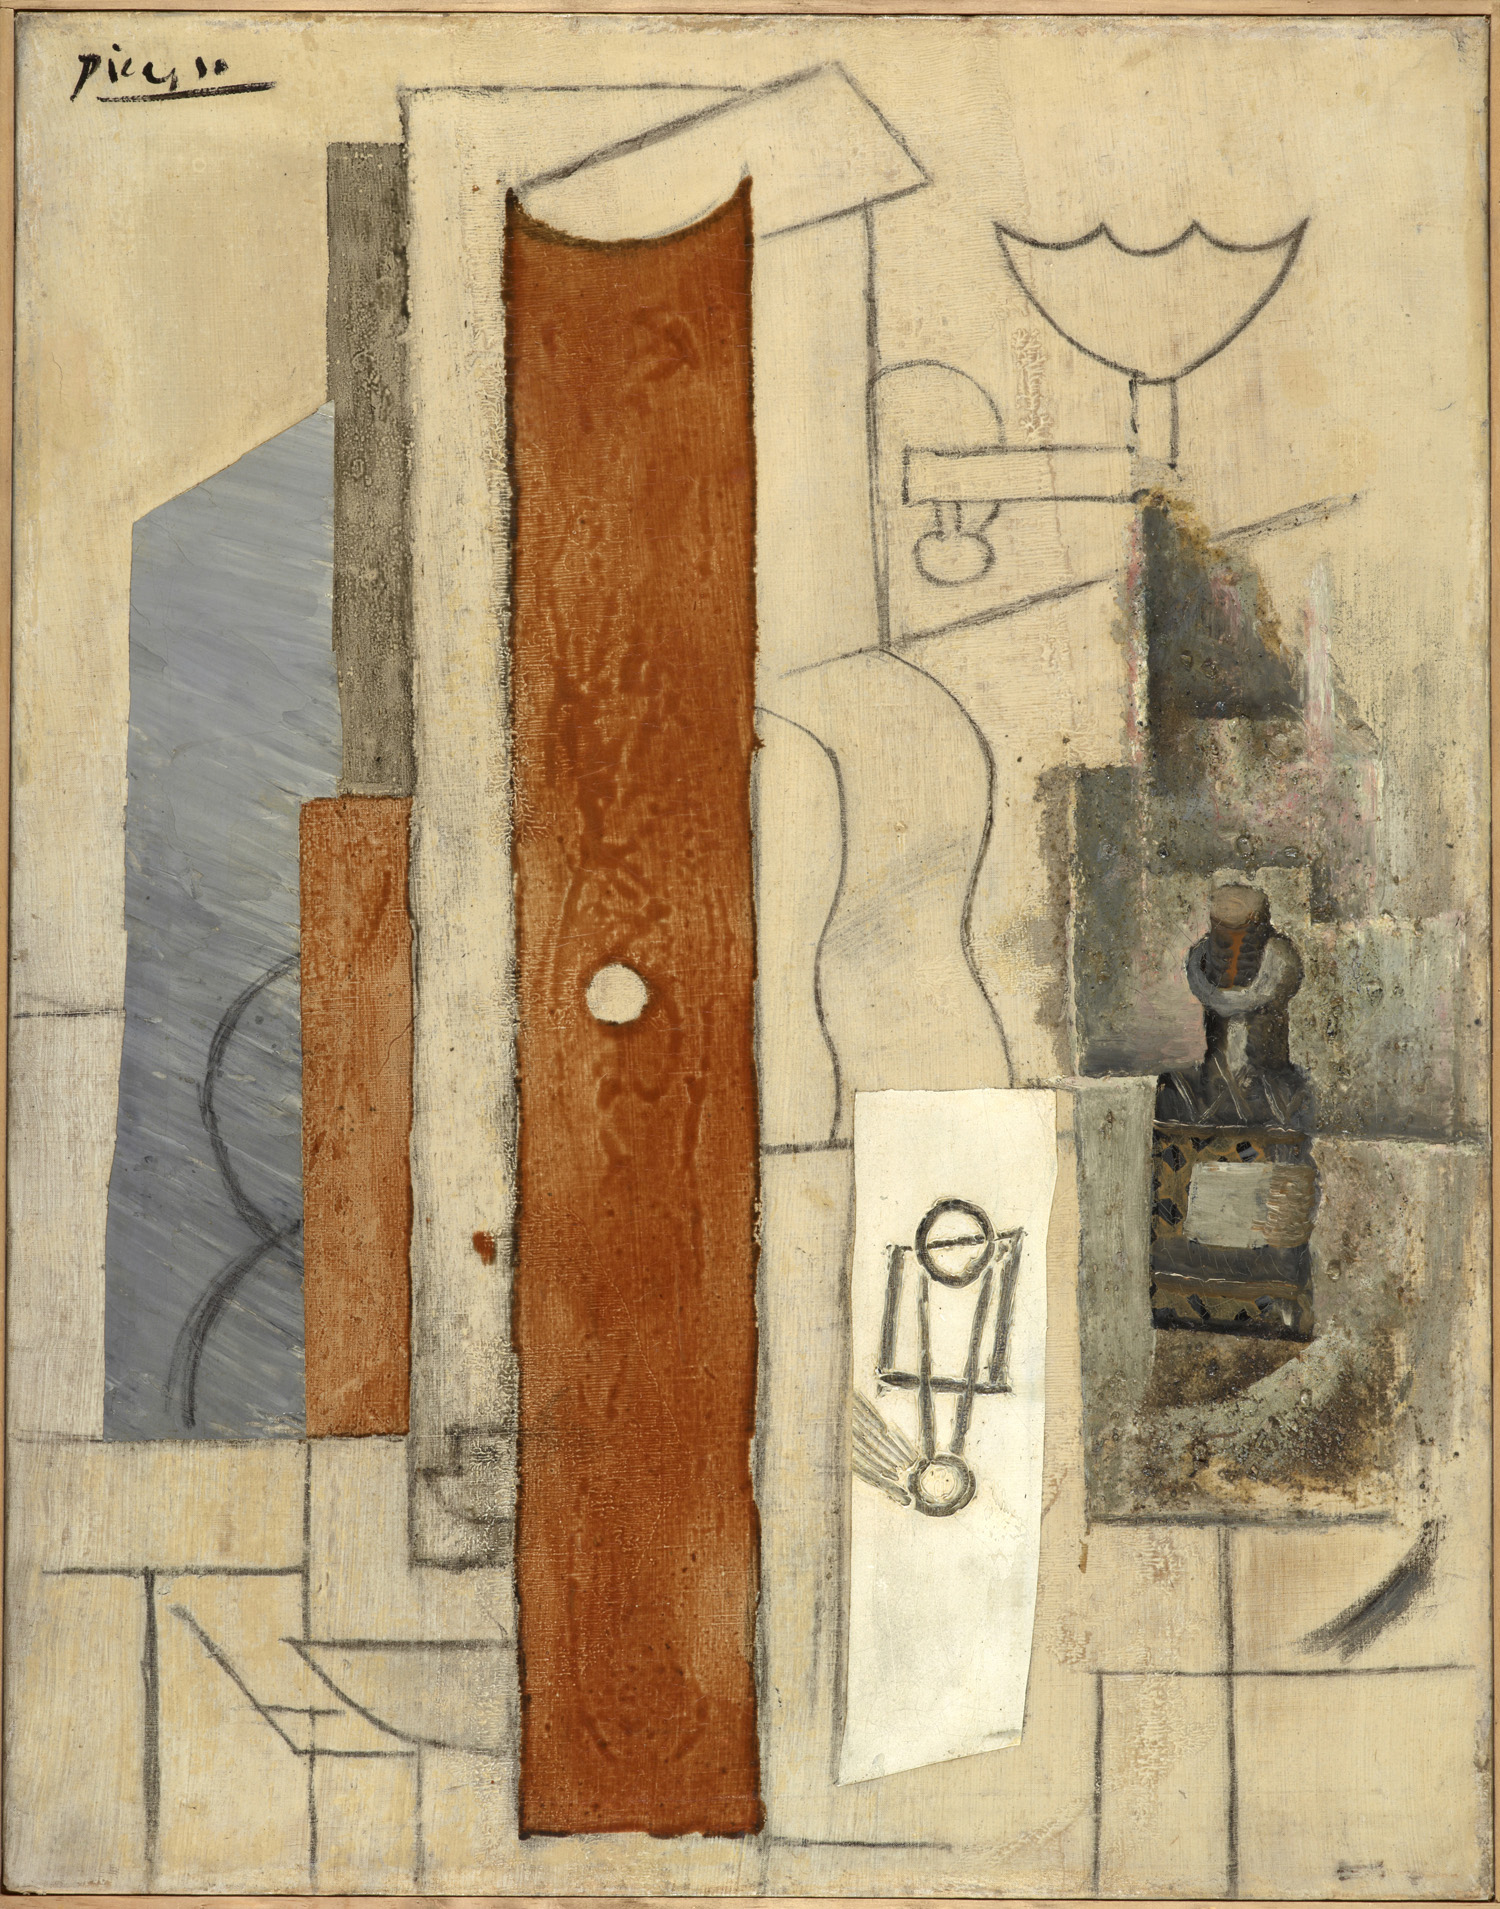 MoMA EXHIBITION EXPLORES PICASSO\'S ICONIC GUITAR SCULPTURES AND HIS ...